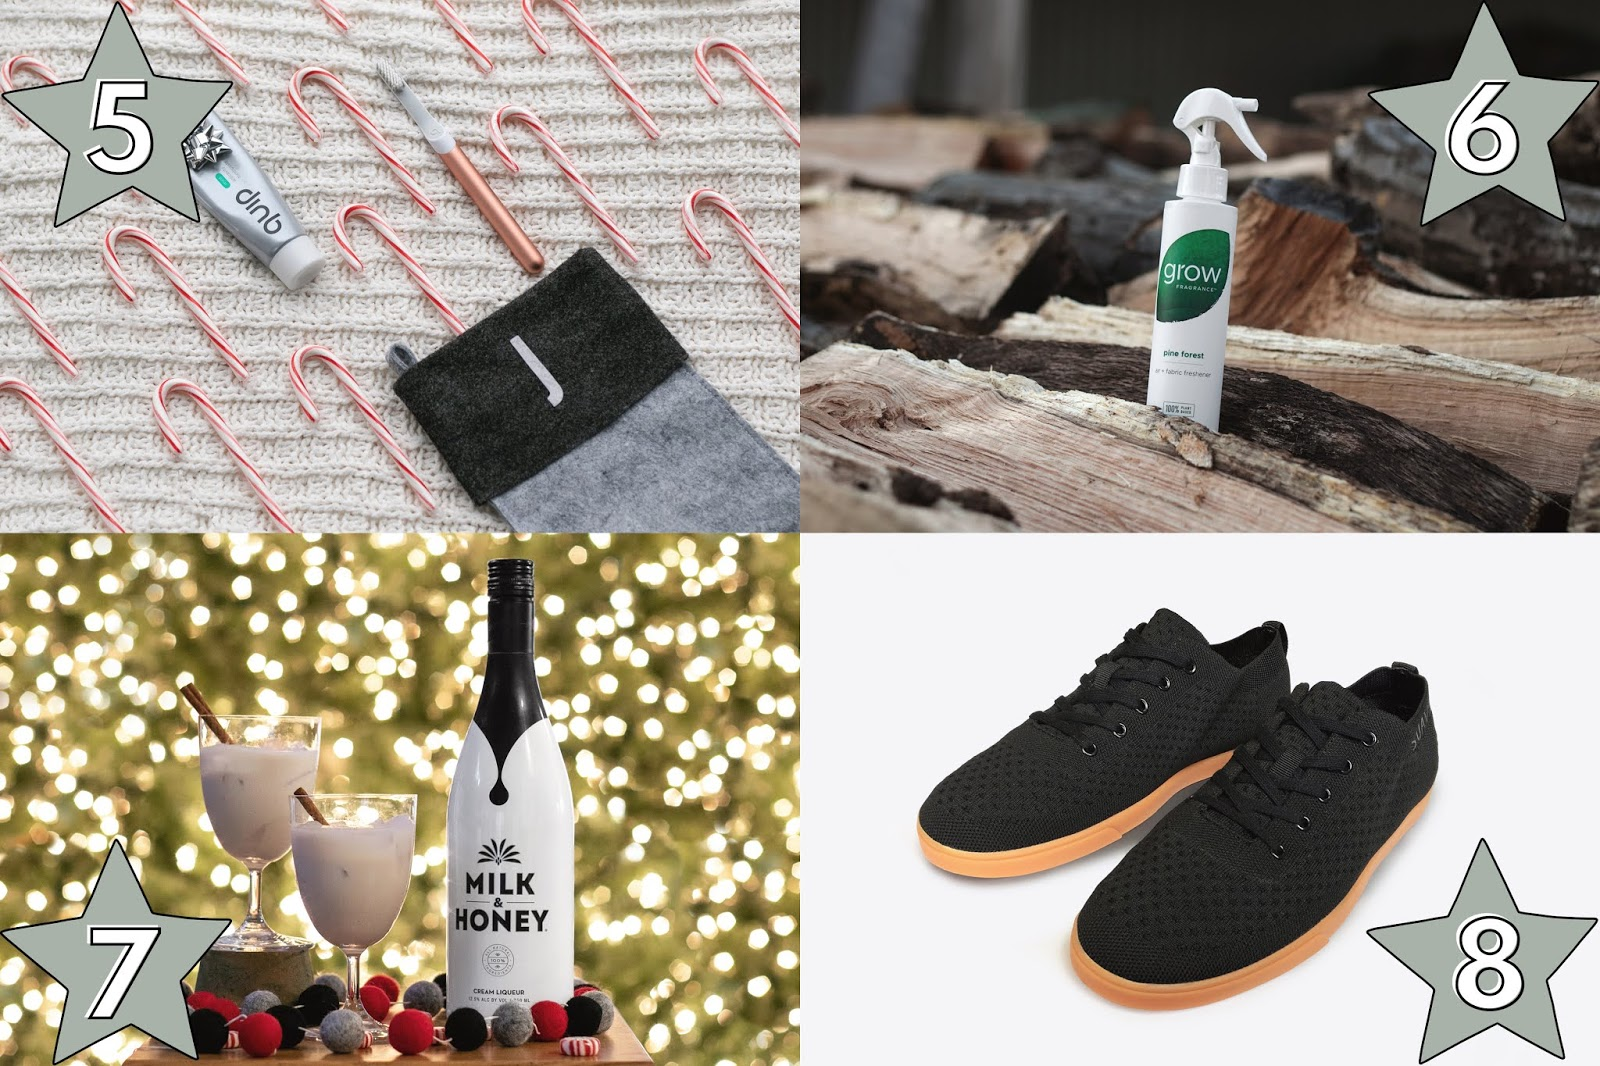 unique gift ideas for him, quip toothbrush gift idea for him, grow fragrance pine organic room spray gift idea for him, milk and honey cream liquor gift for him, suavs shoes gift for him, affordable holiday gifts for him, holiday gift guide for him